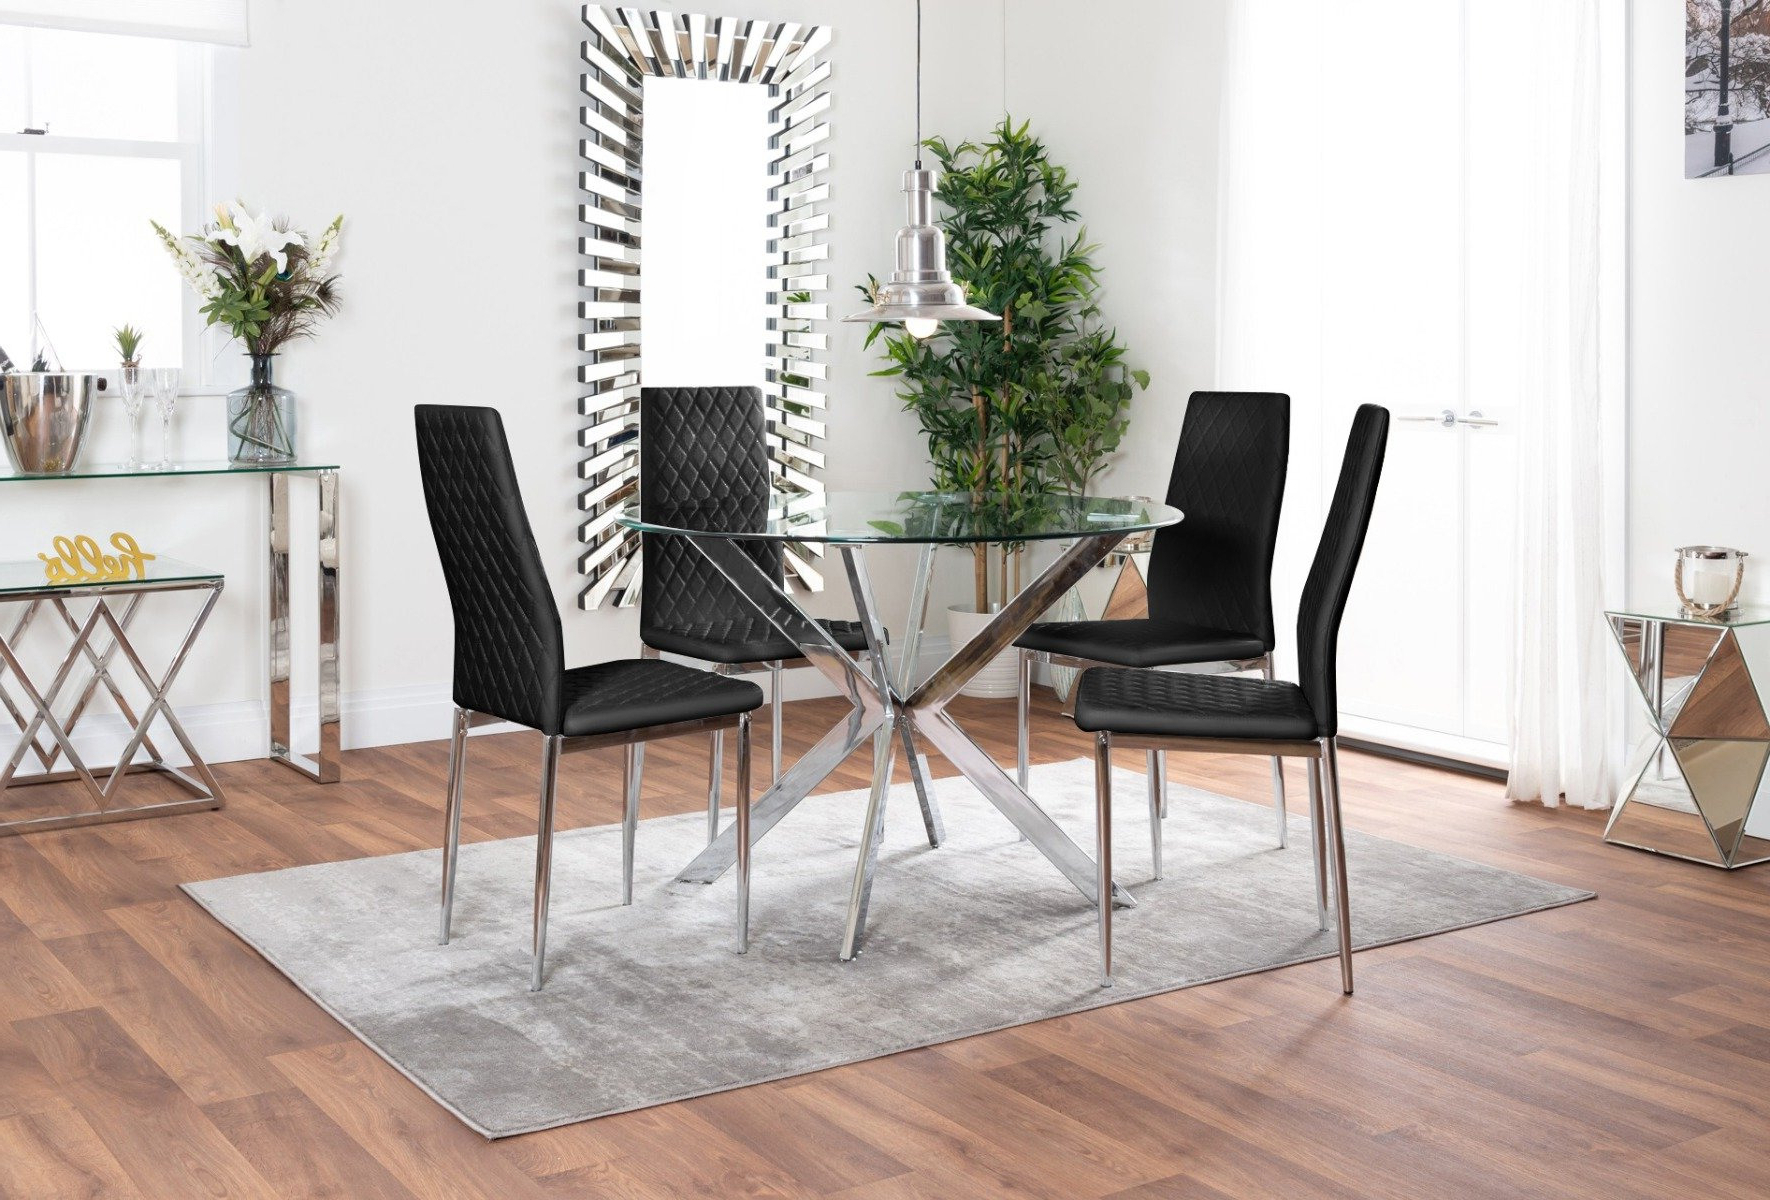 Venice Glass Chrome Table & 4 Milan Chairs | Furniturebox Throughout Milan Glass Tv Stands (View 11 of 20)